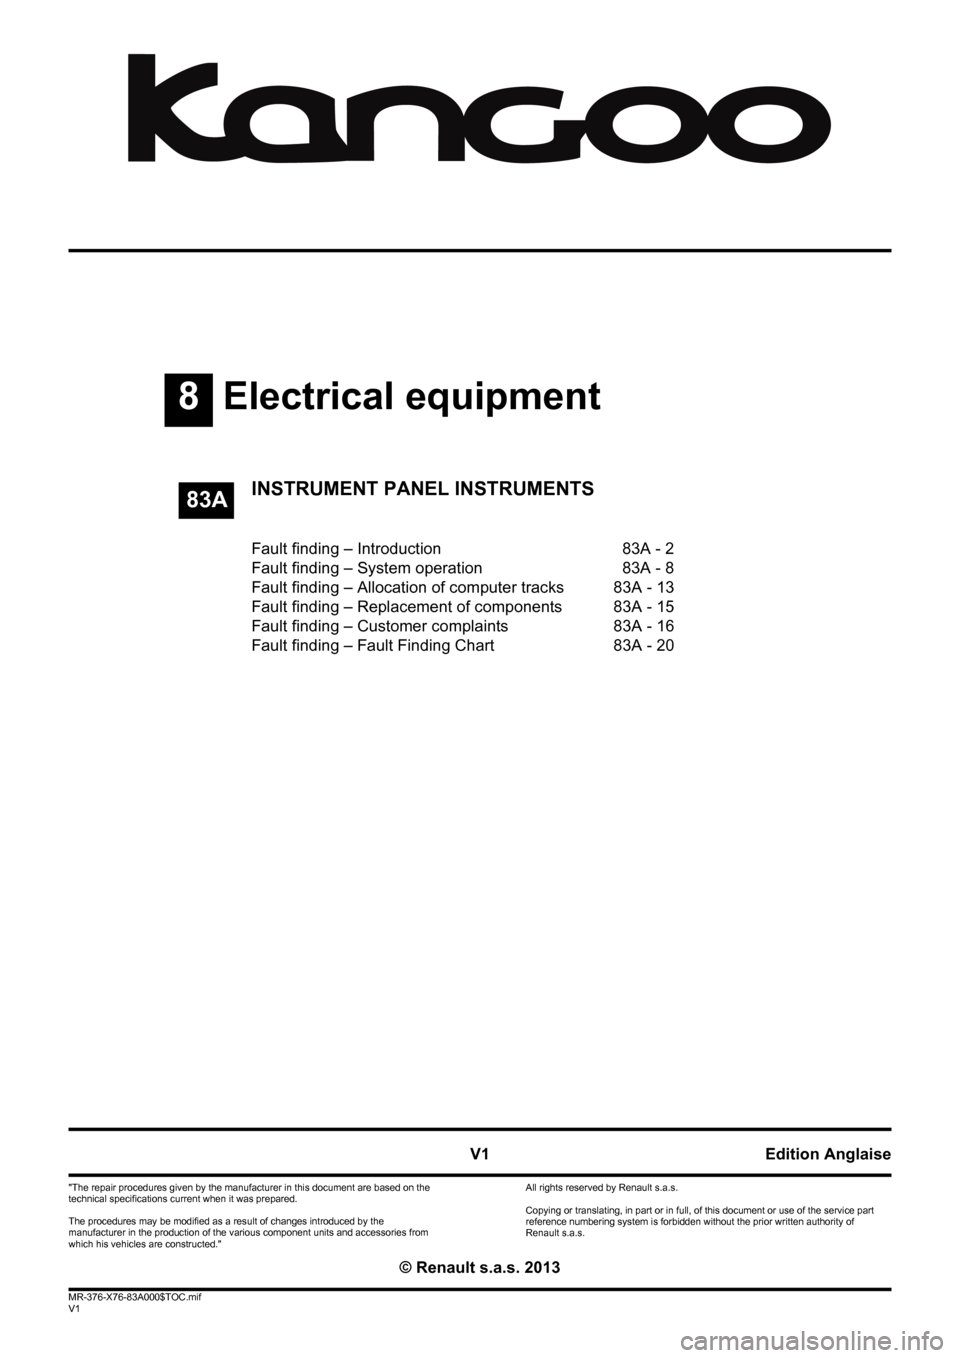 RENAULT KANGOO 2013 X61 / 2.G Instrument Panel Instruments Workshop Manual, Page 1